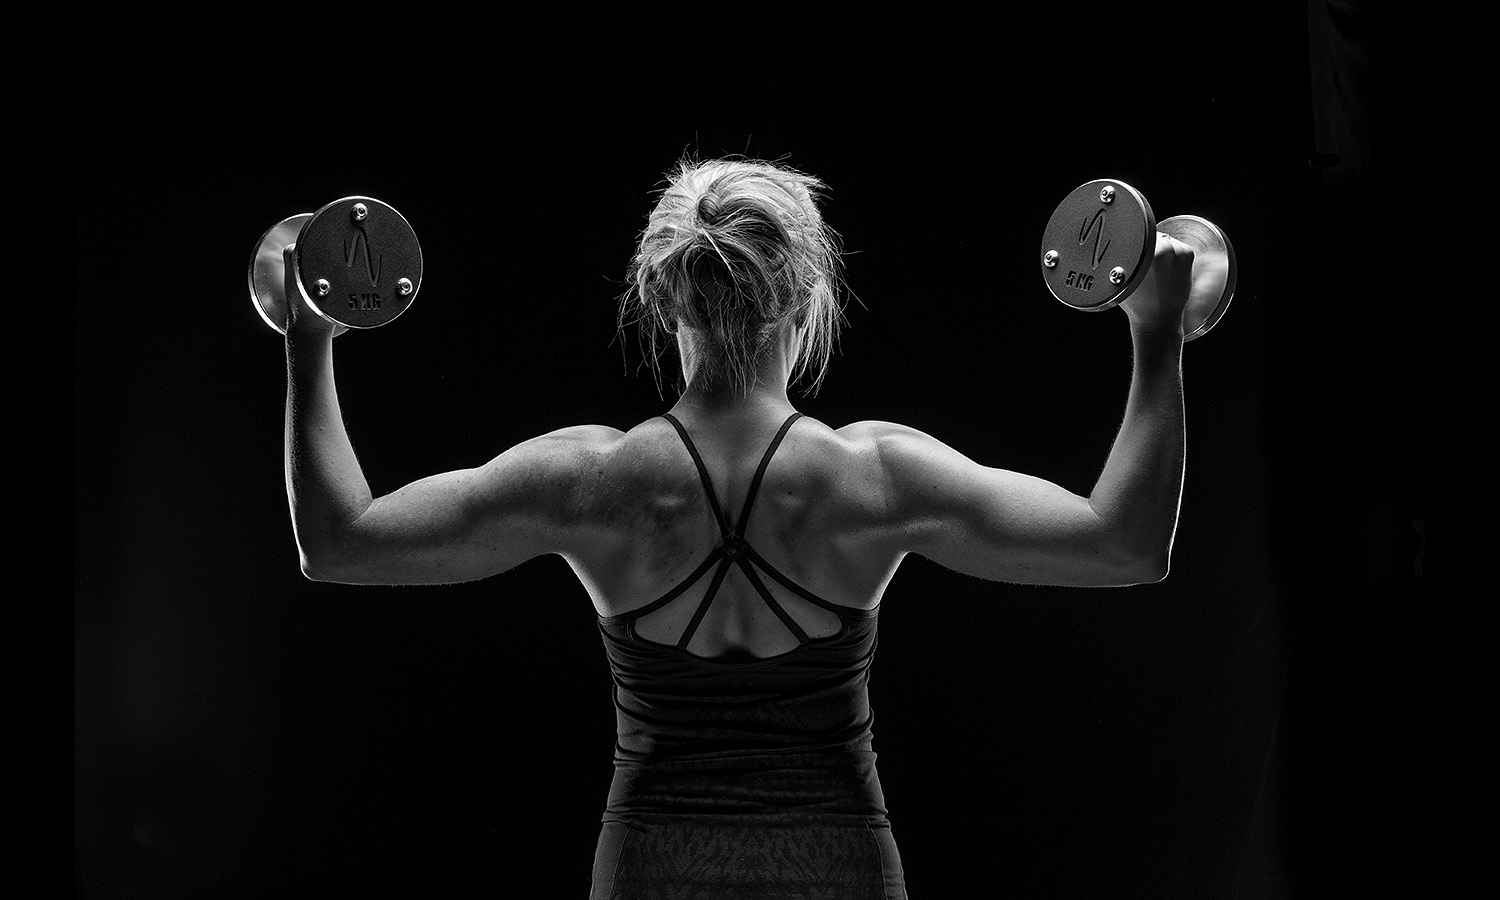 Fitness black and white advertising photographer